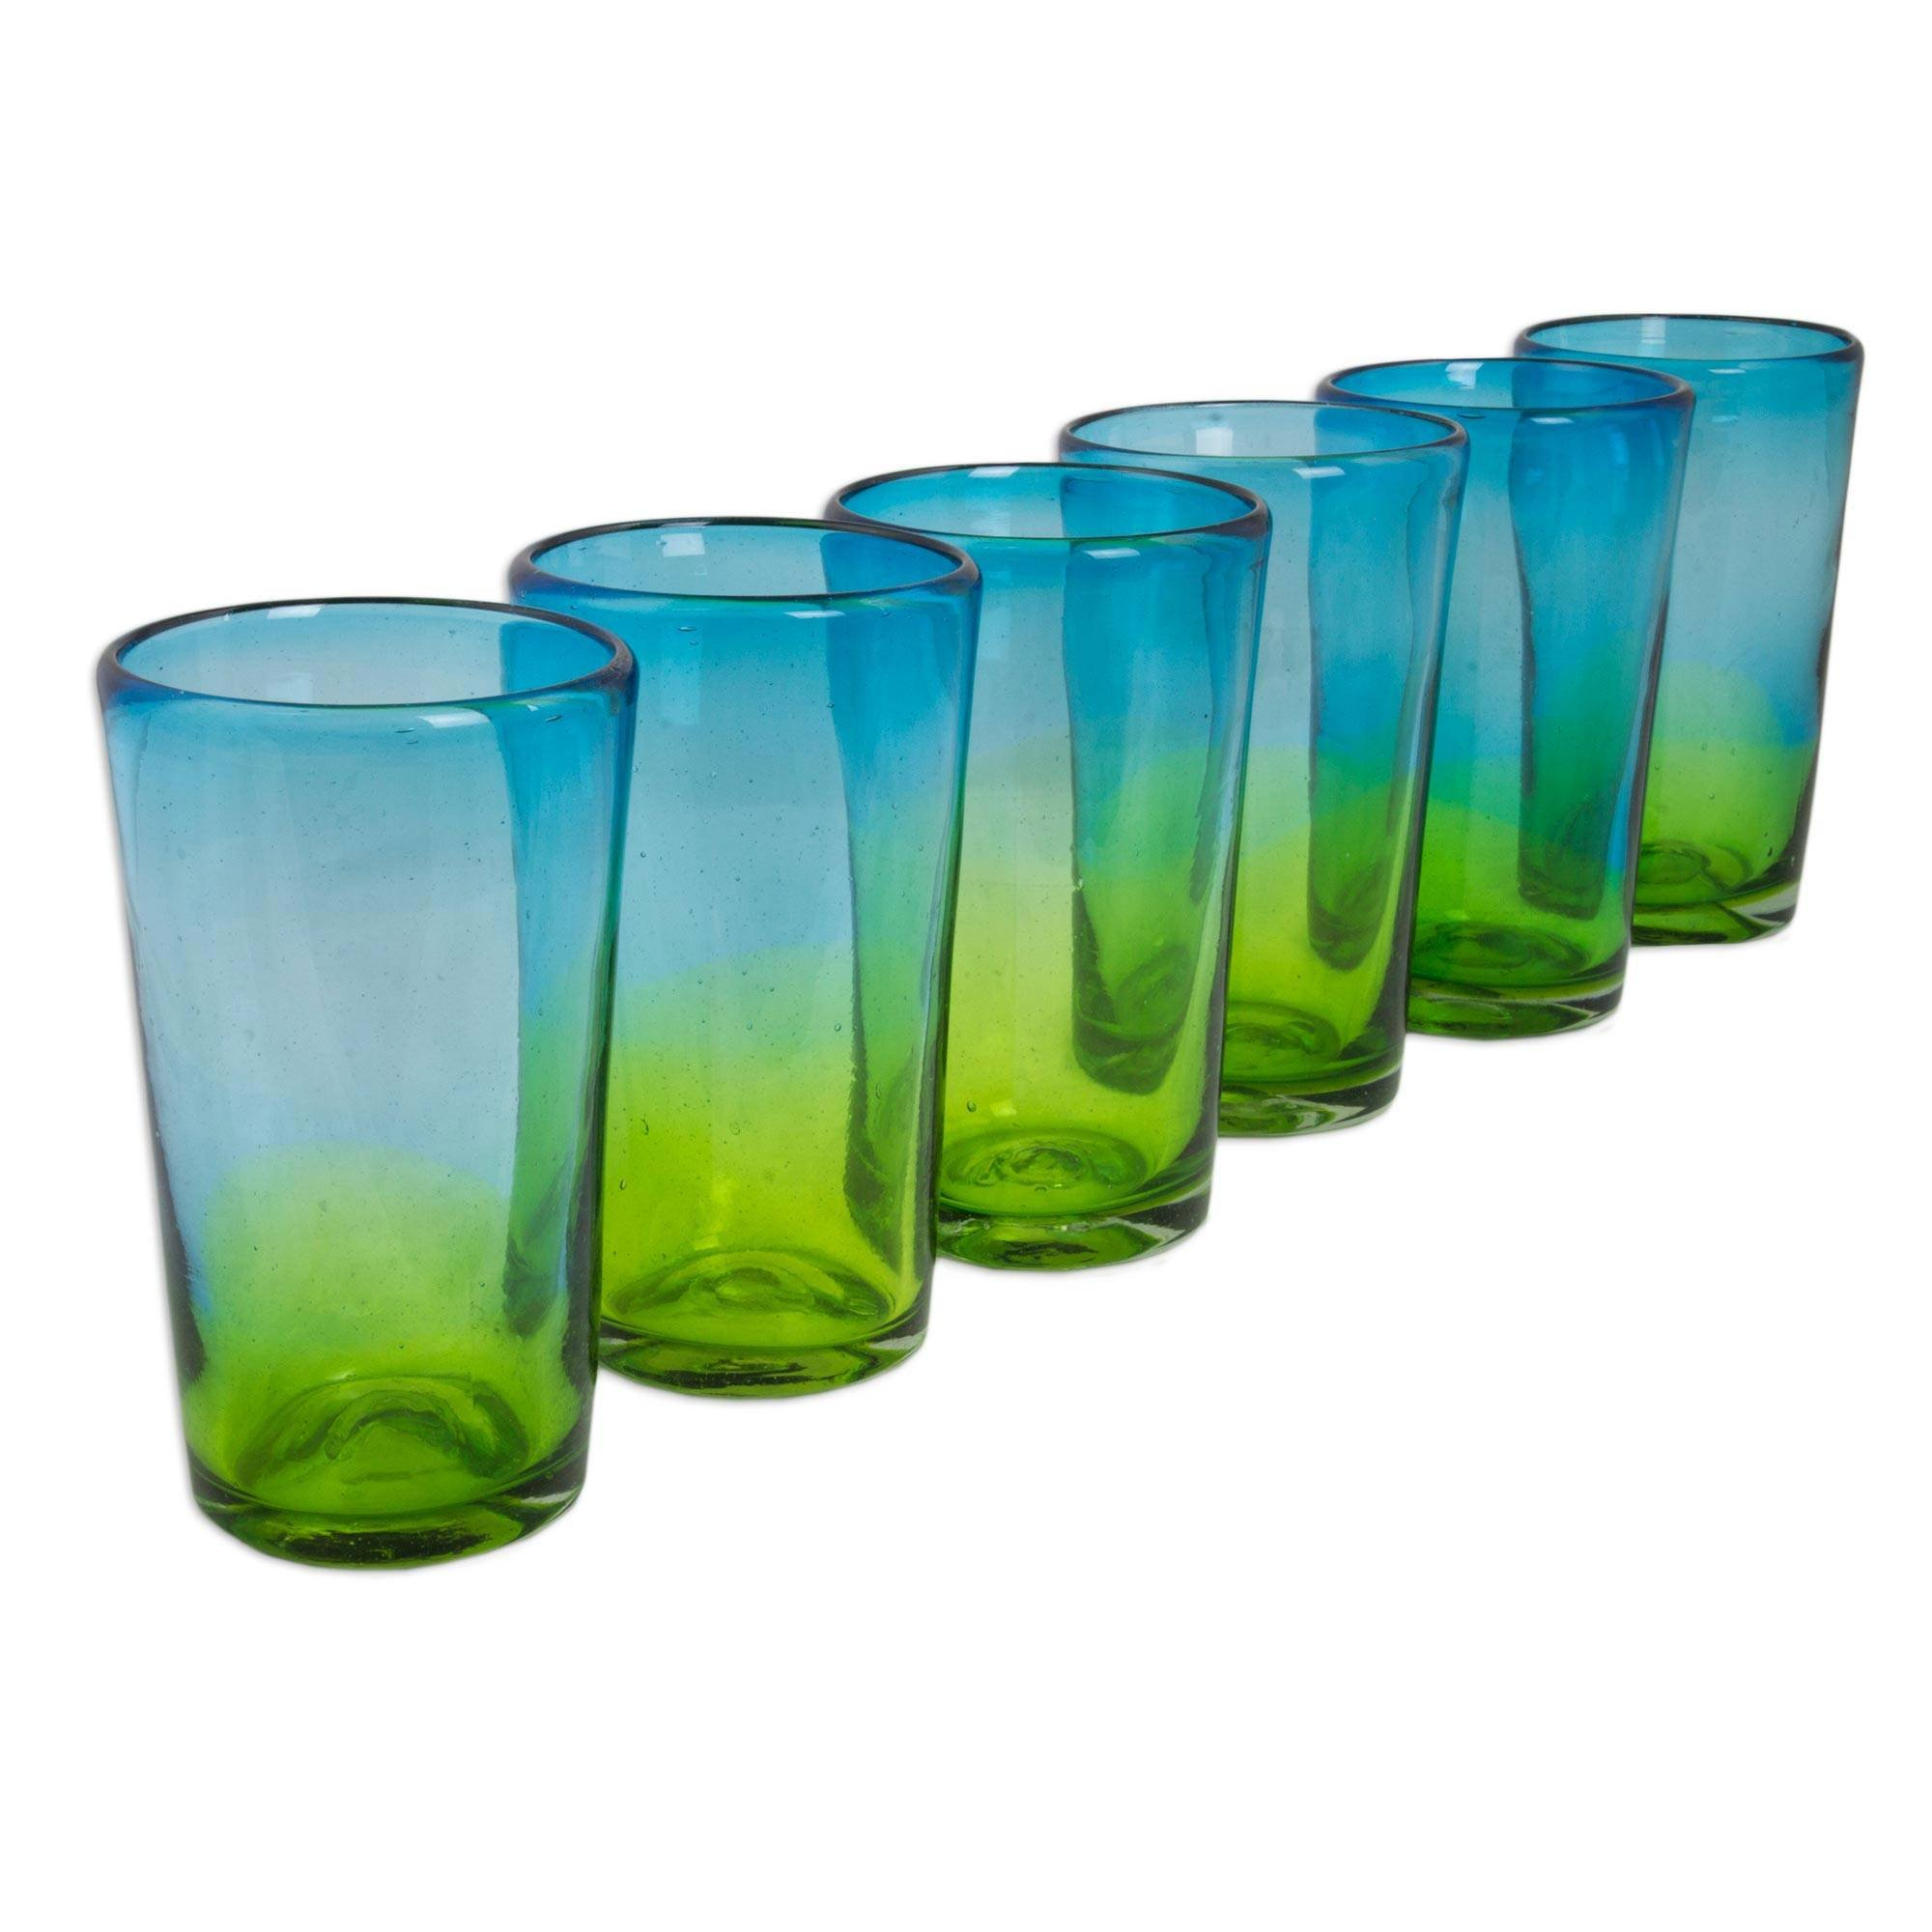 NOVICA Hand Blown Recycled Glass Blue and Green Ombre Highball Glasses, 15 oz, Aurora Tapatia' (set of 6) by NOVICA (Image #2)